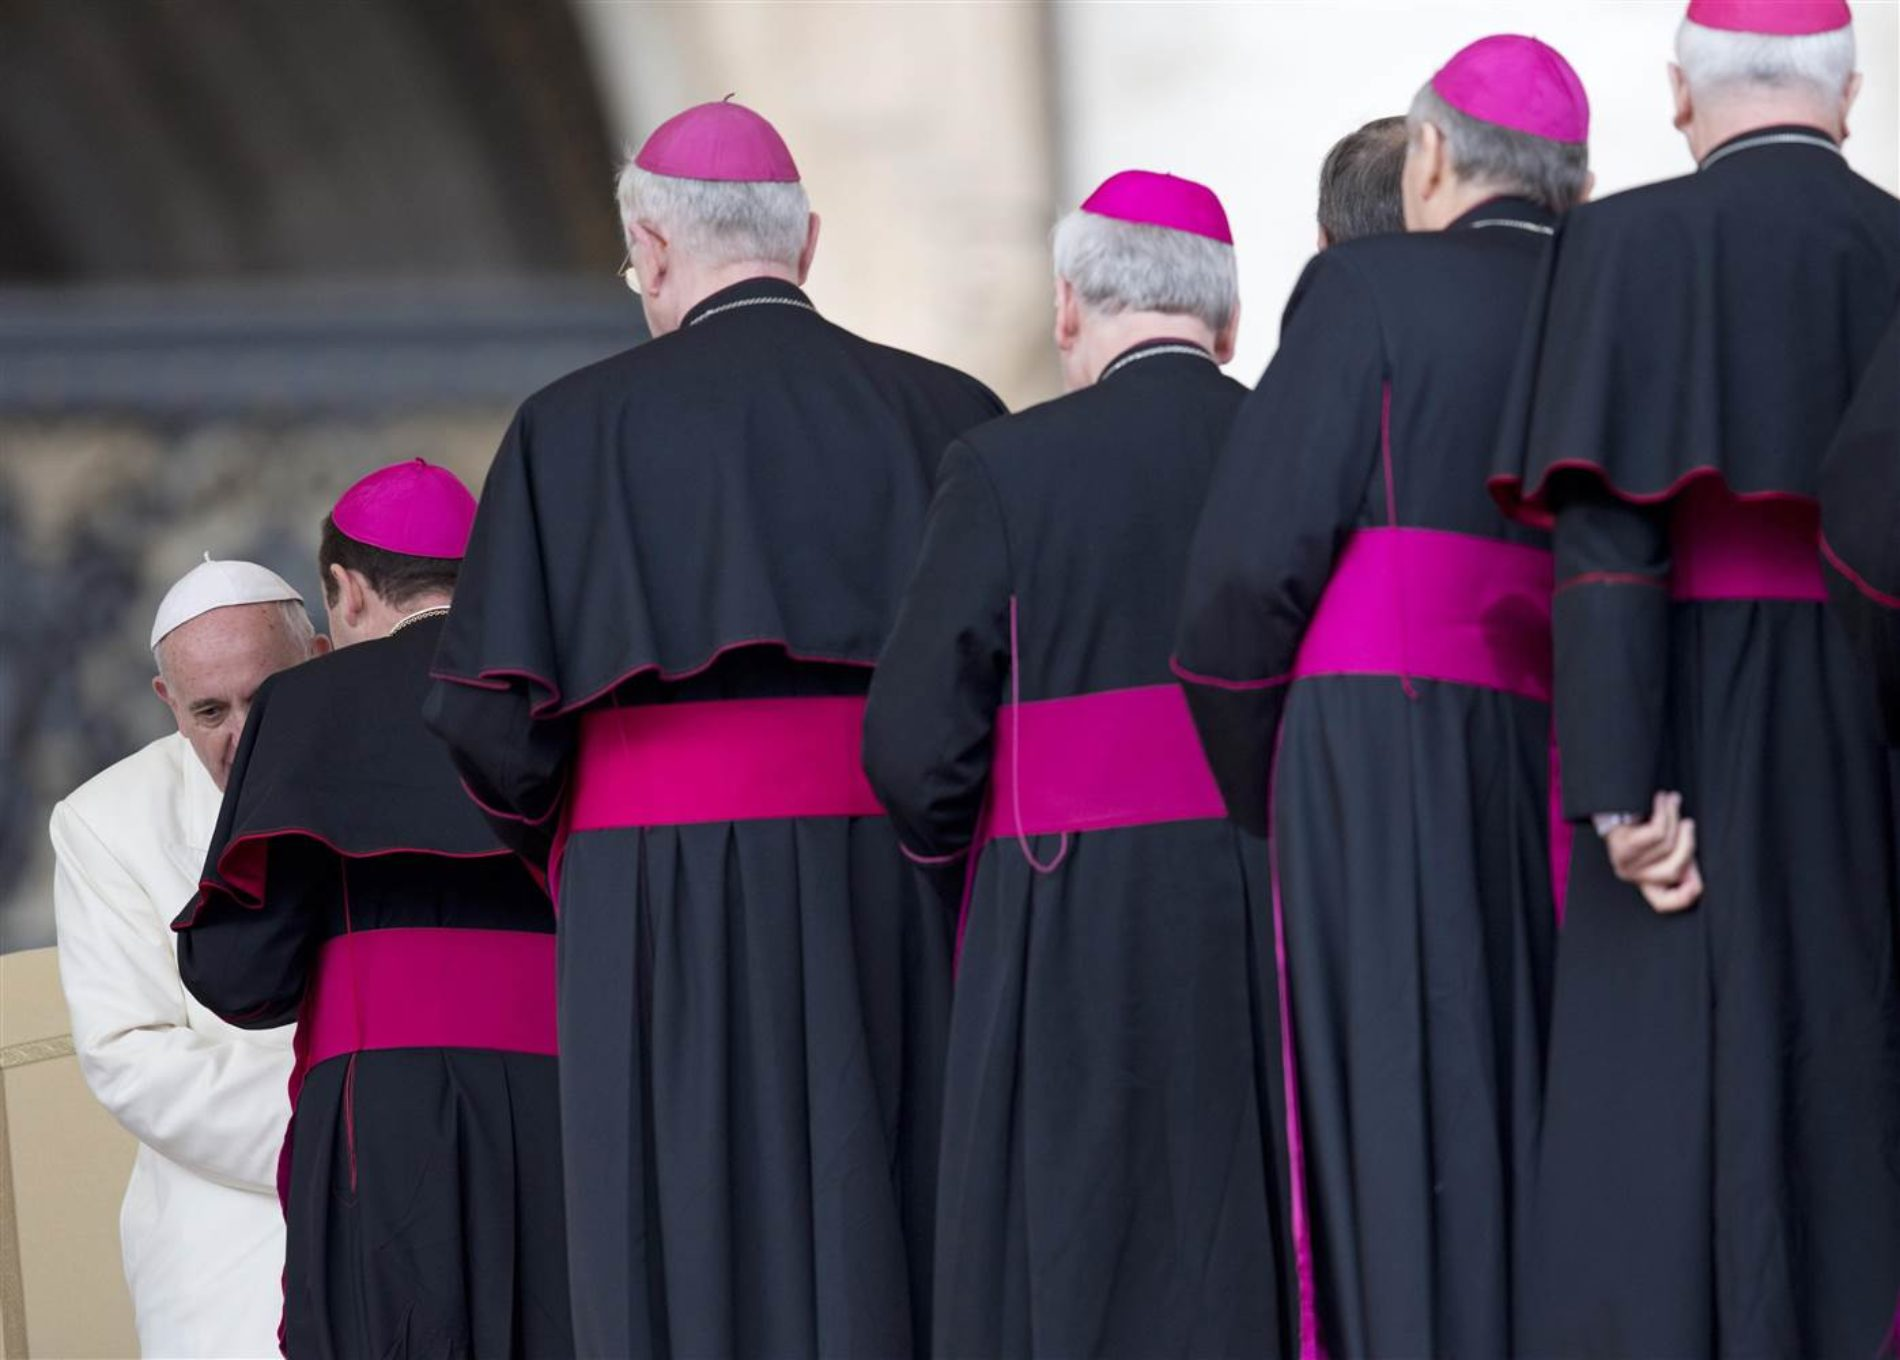 The Vatican Still Maintains That Gay Men Shouldn't Be Priests